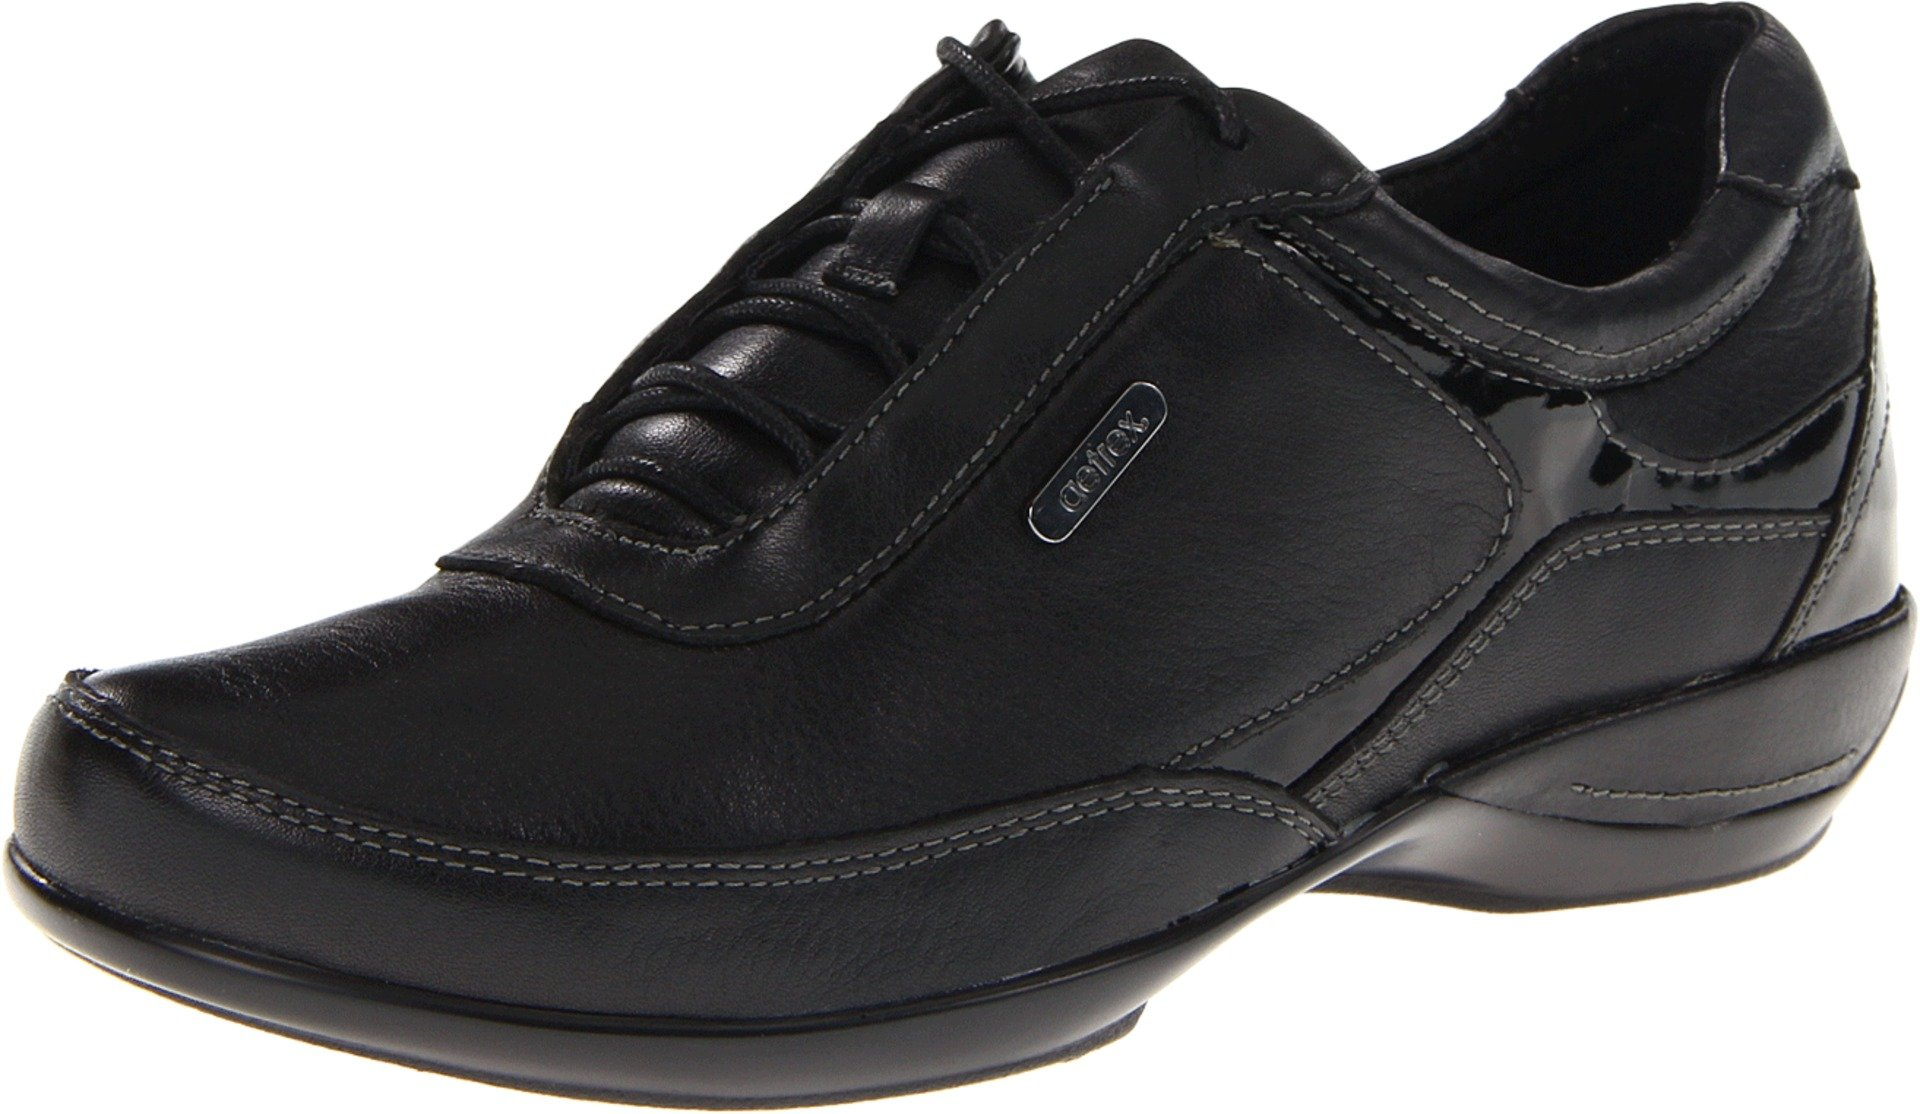 Aetrex Women's Holly Lace-Up Oxford, Black, 5 M US by Aetrex